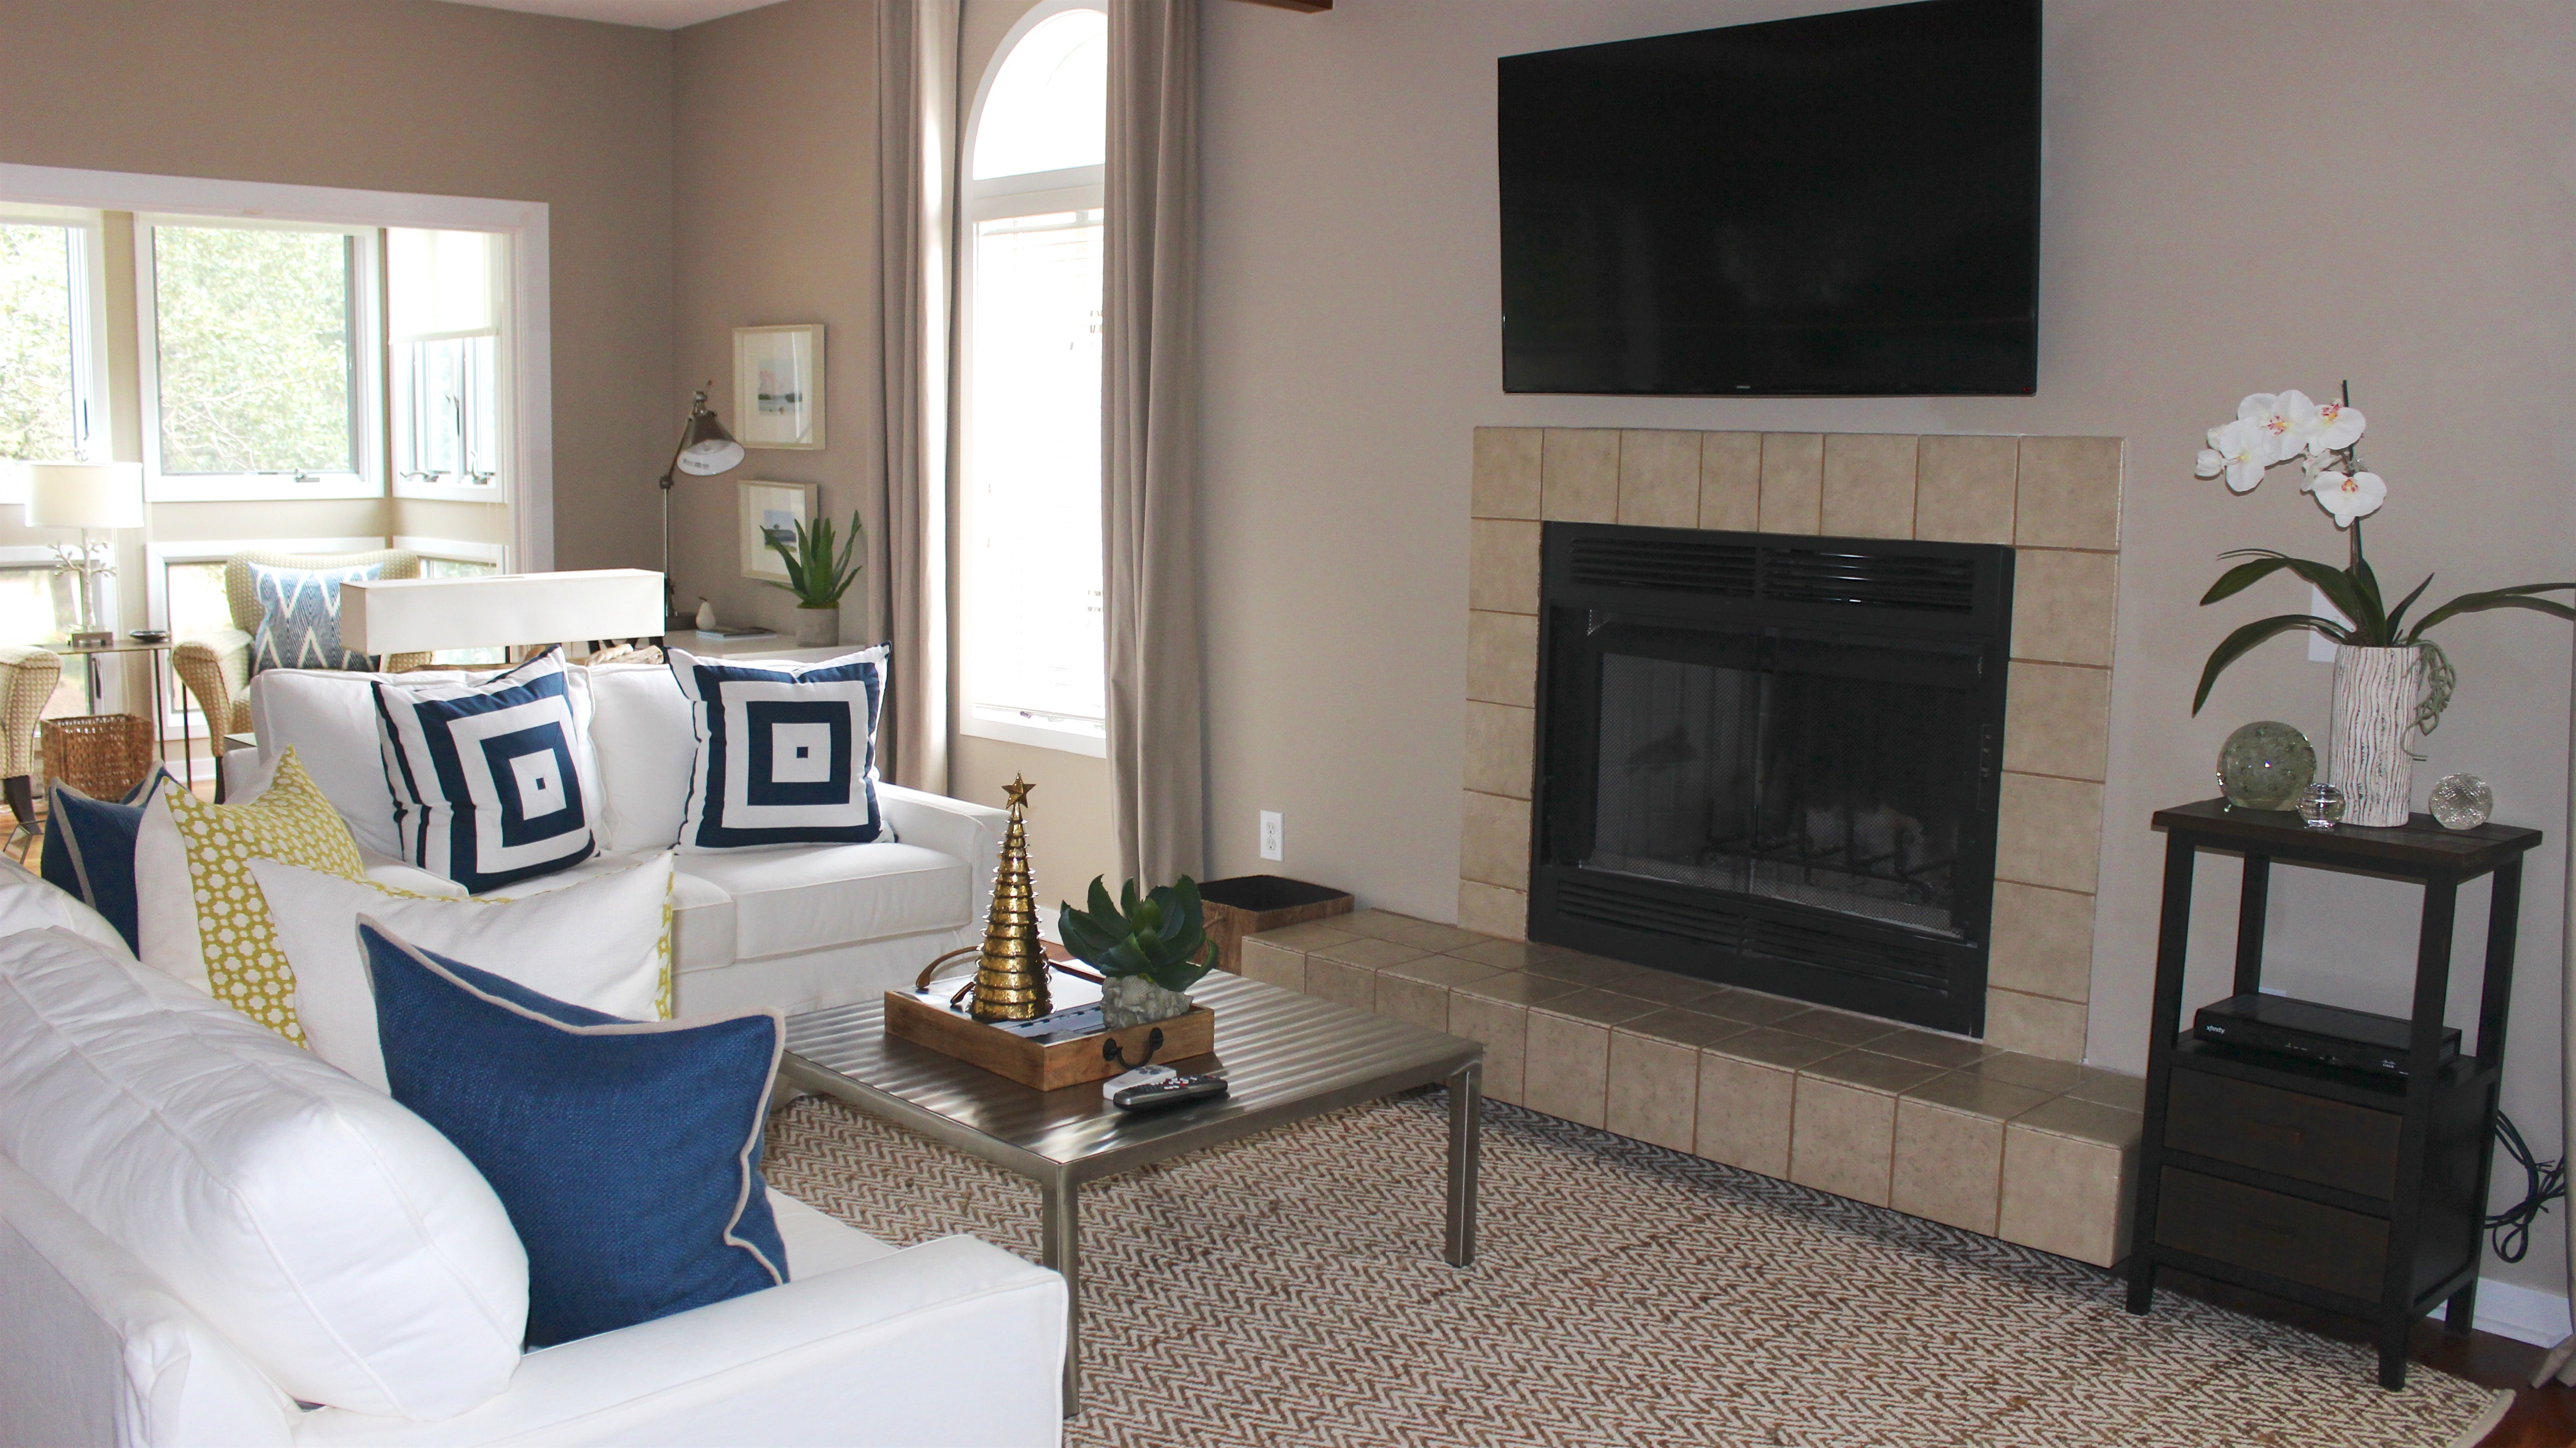 There is a large HDTV mounted over the fireplace.